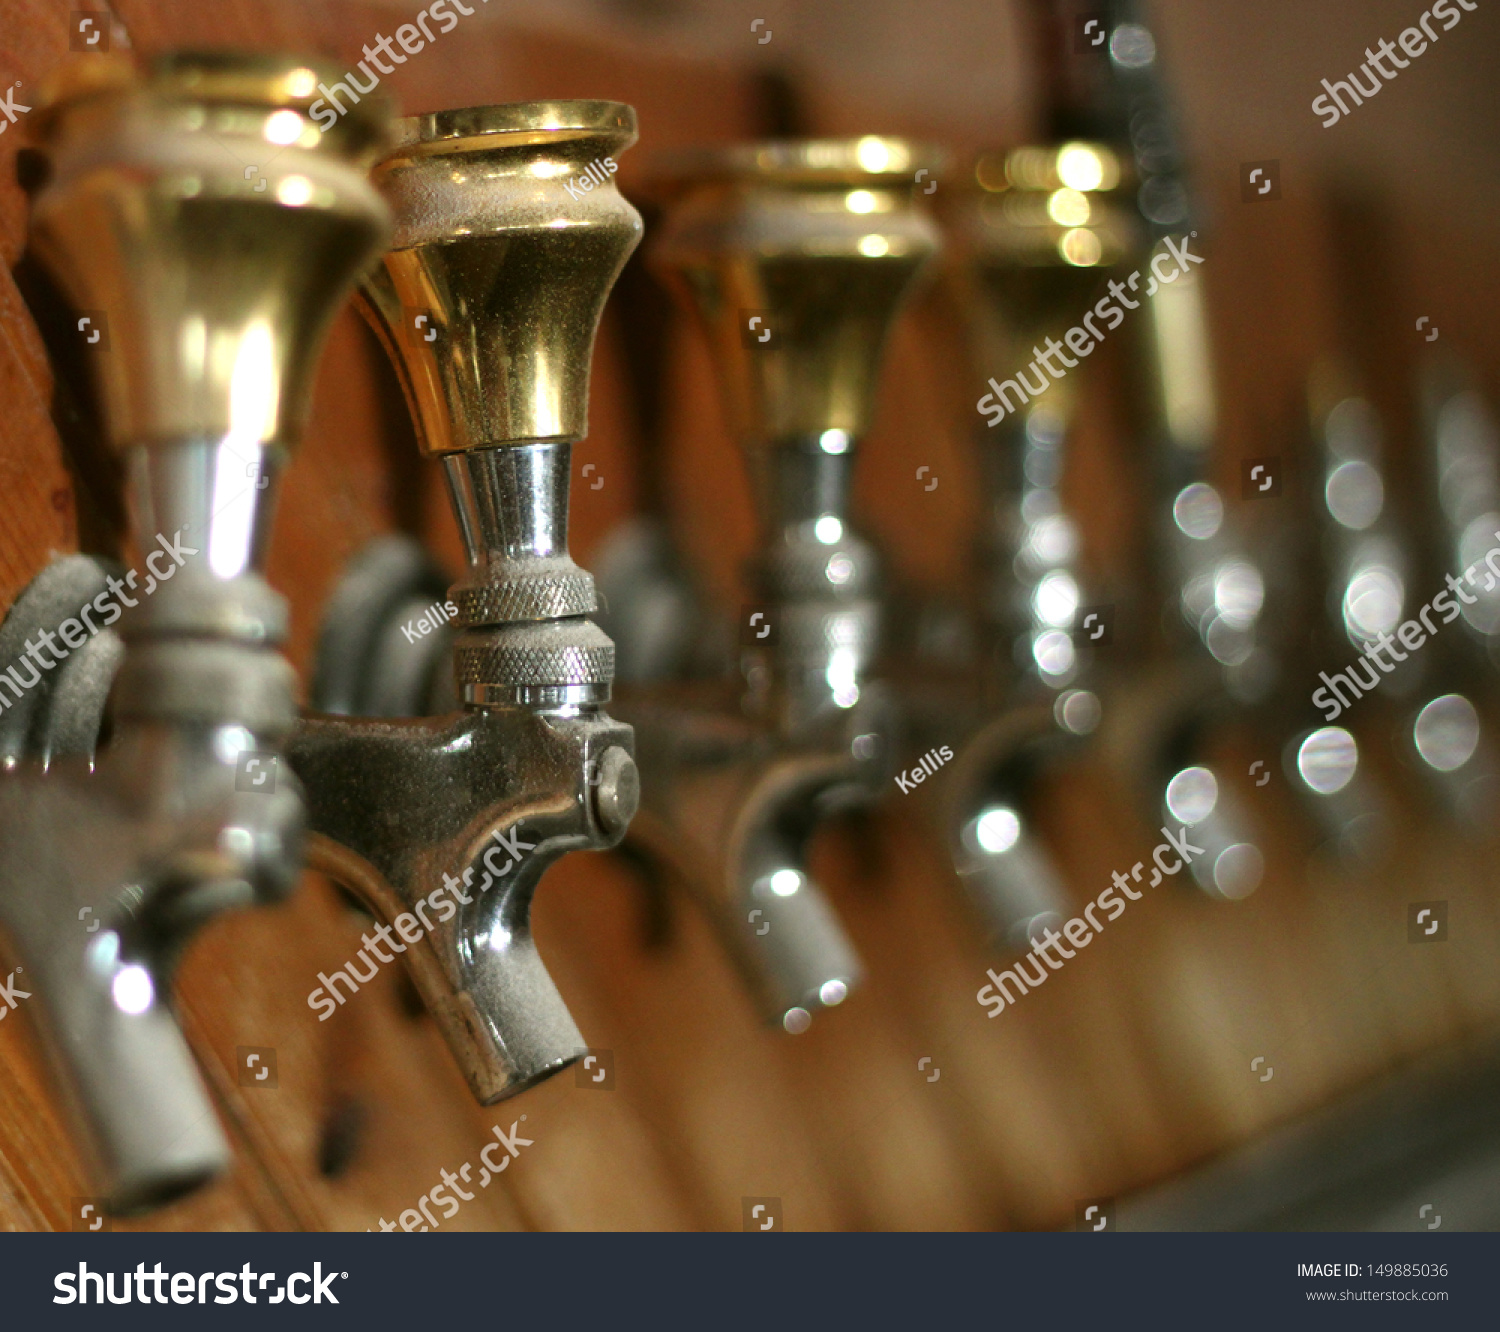 Row Dusty Old Beer Taps Abandoned Stock Photo 149885036 - Shutterstock